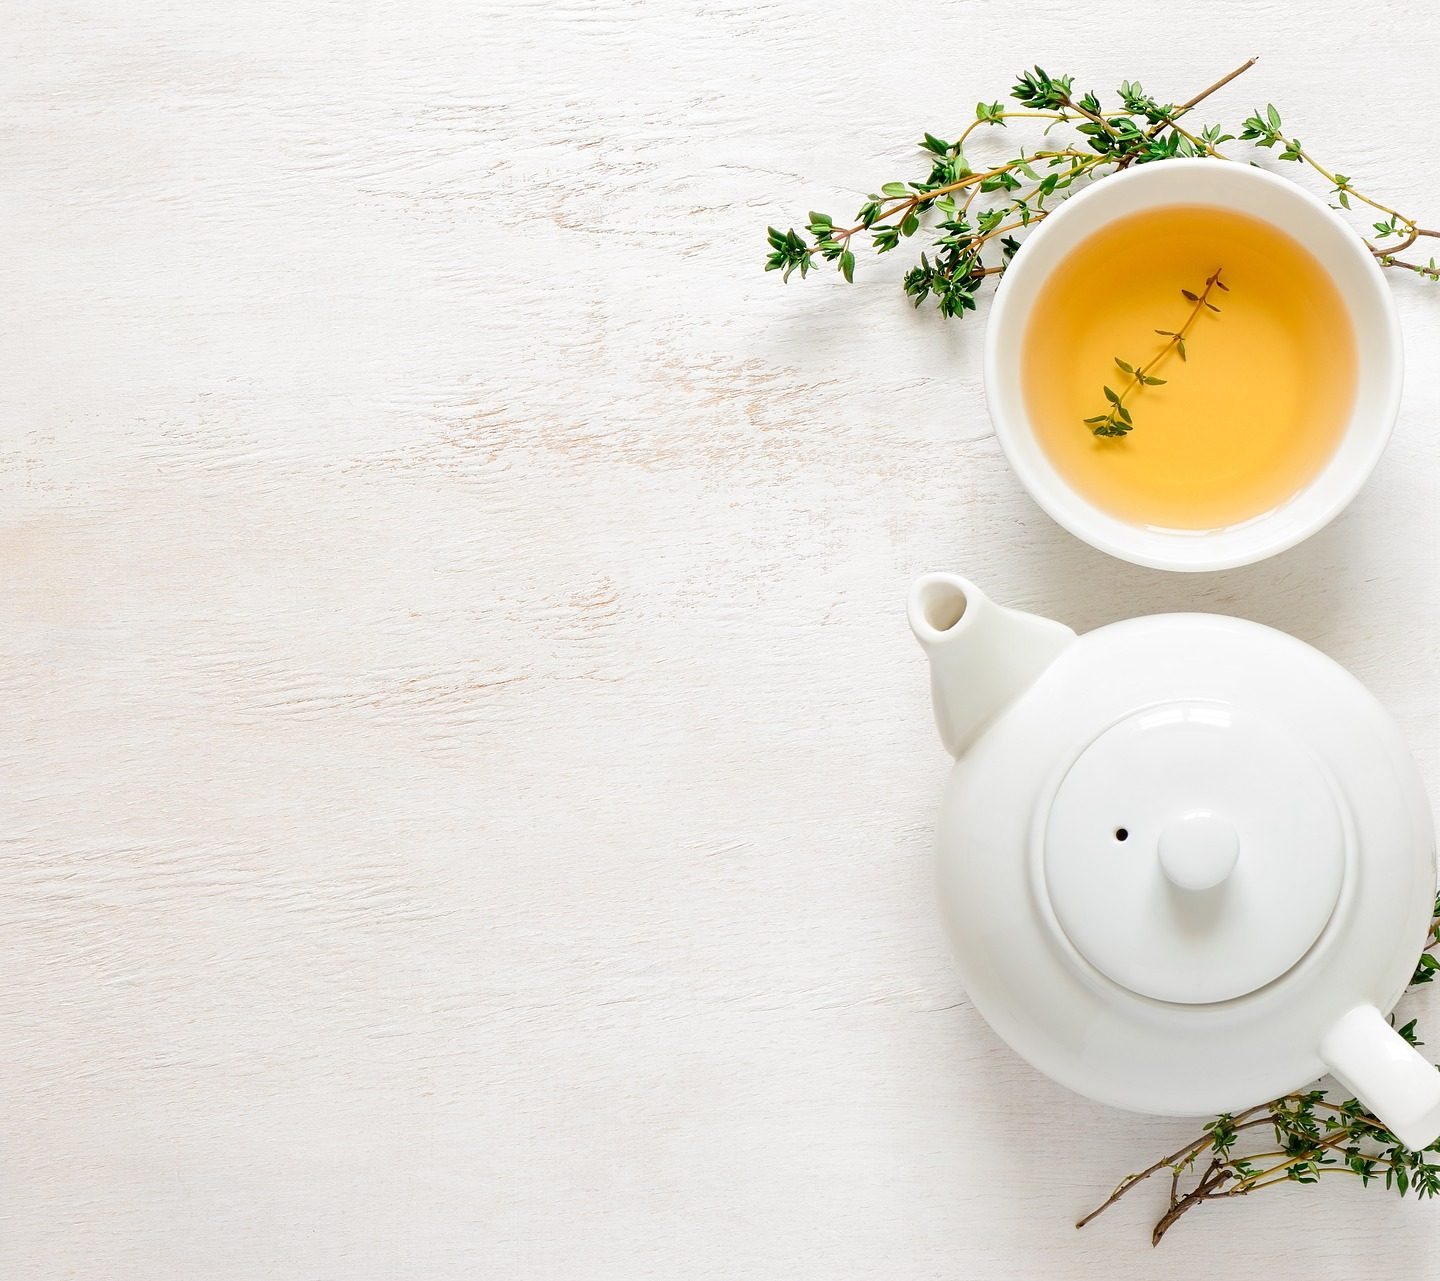 8 Must-Have Tea Accessories for Your Home